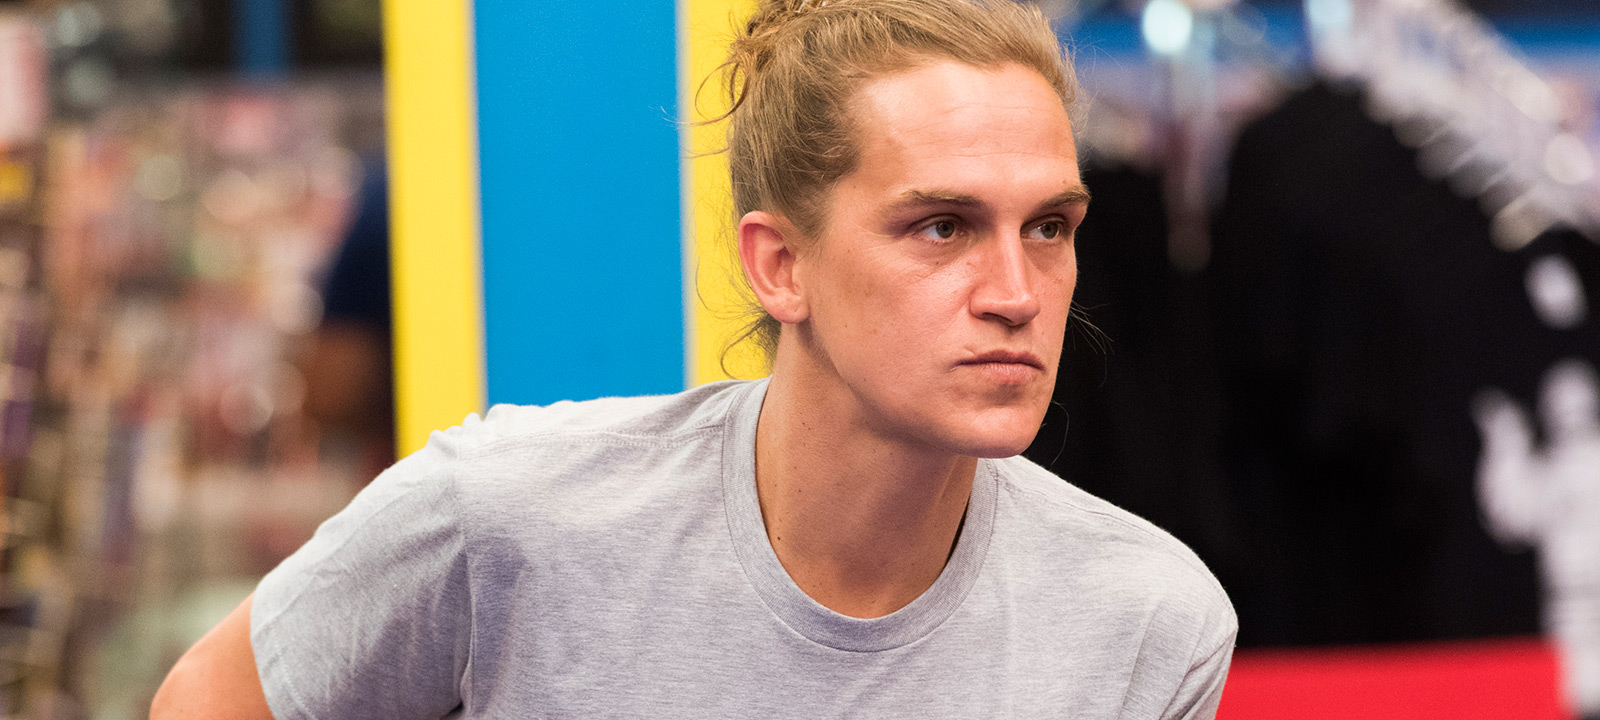 comic-book-men-611-jason-mewes-800×600